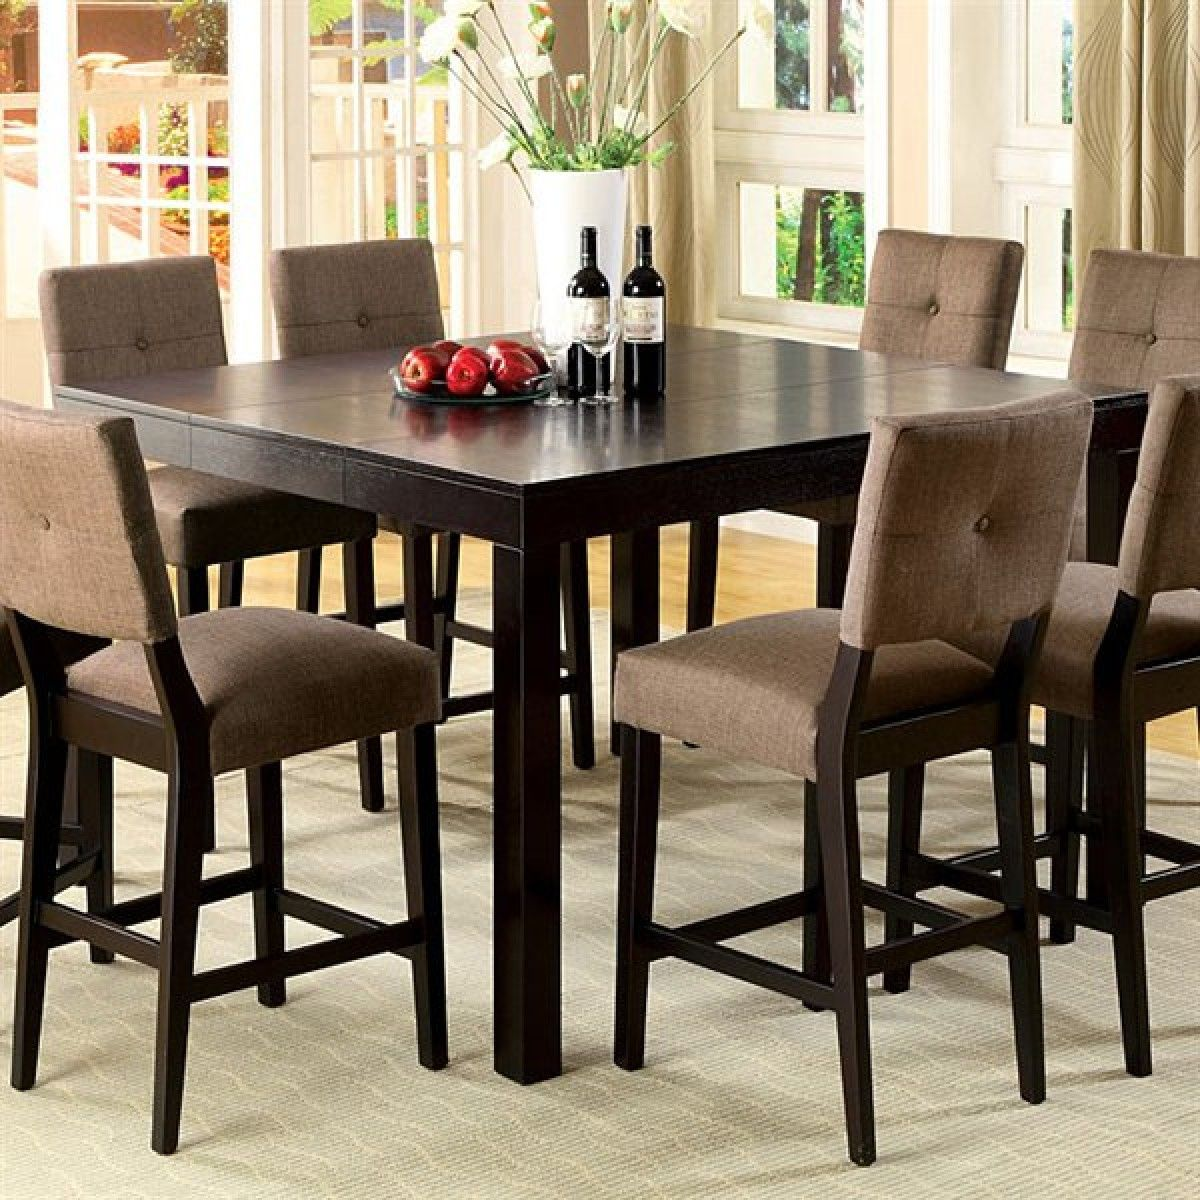 Counter Height Dining Table - http://www.cottagehomedecorating.com ...